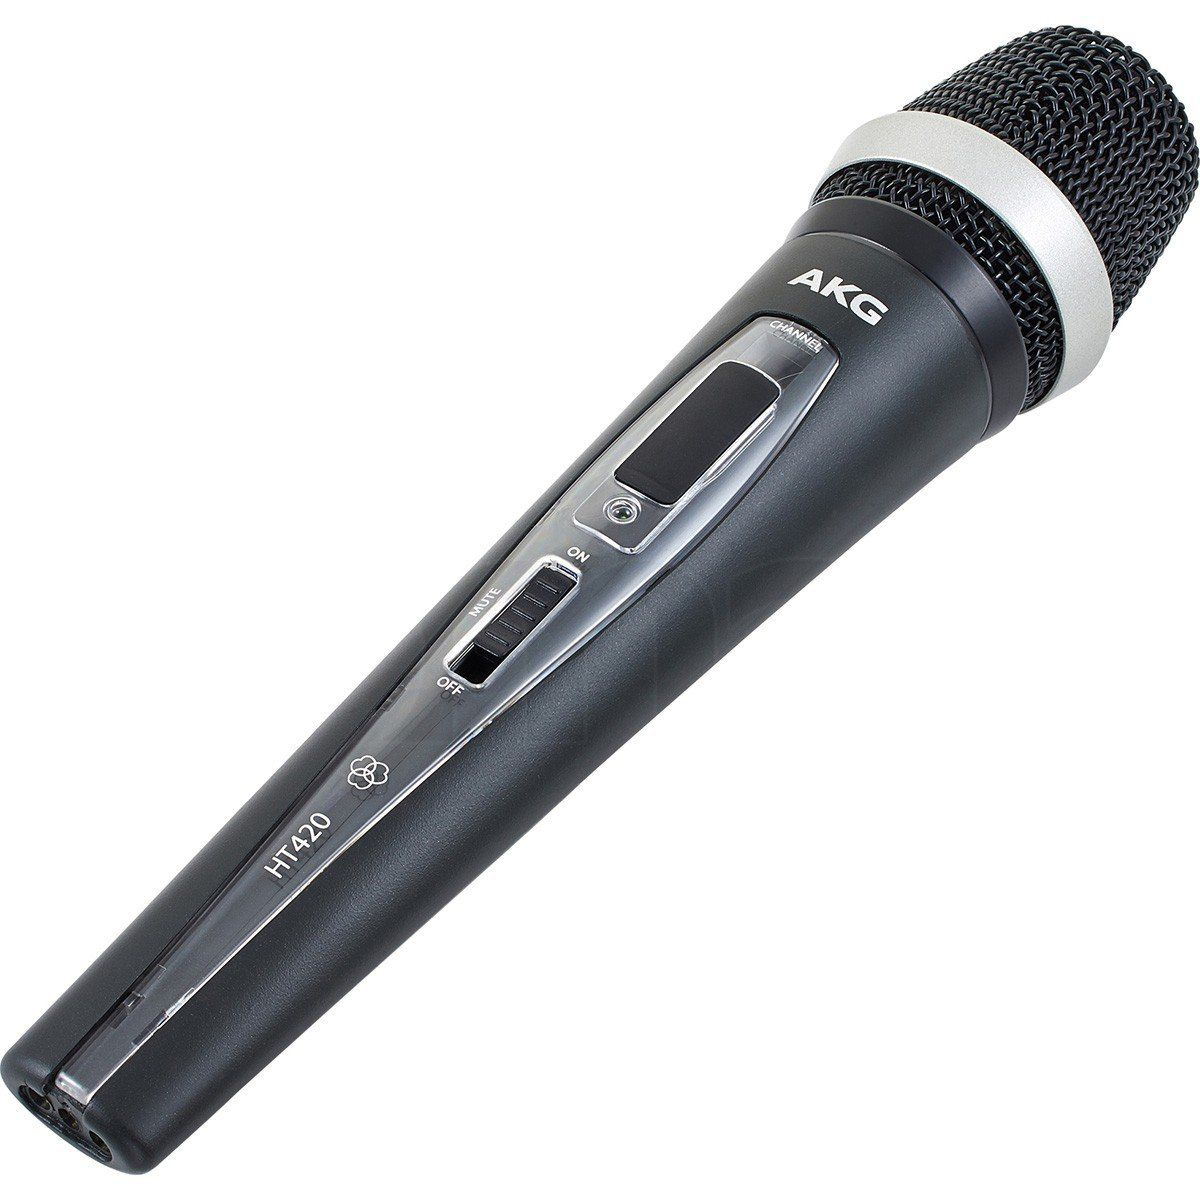 Akg WMS420 Single Vocal Set Microfone Sem Fio Akg WMS 420 Single Vocal Set